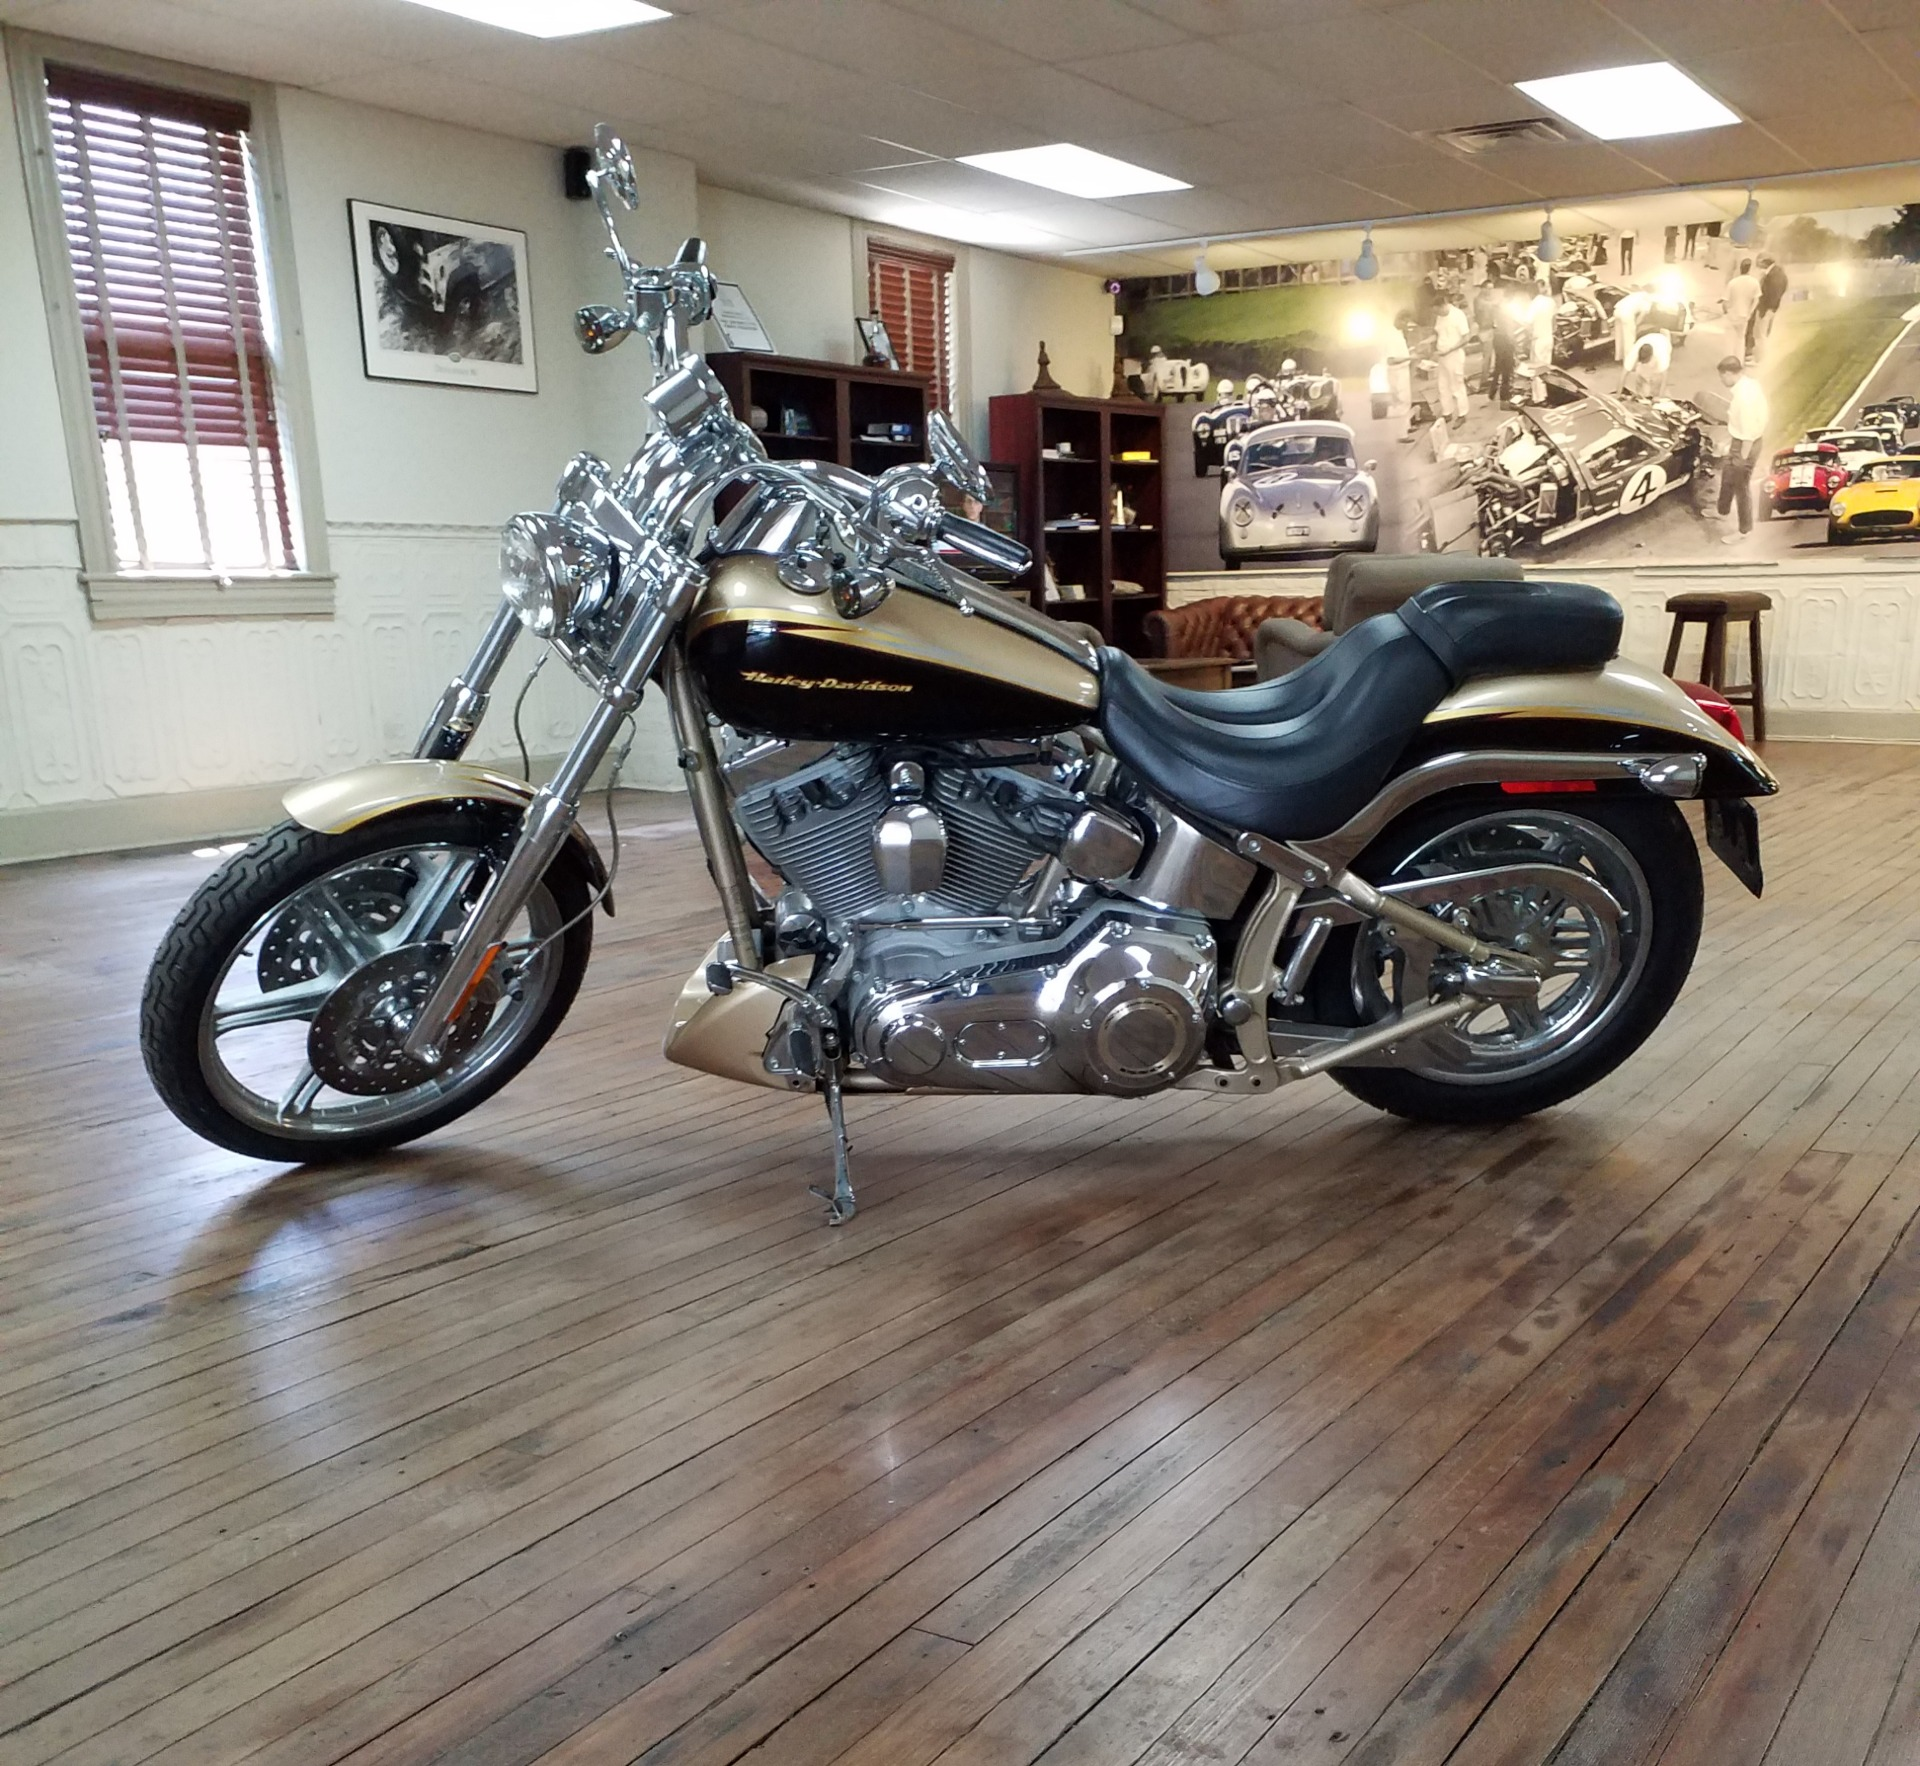 Used 2003 Harley - Davidson Screaming Eagle 100th Anniversary | Peapack, NJ